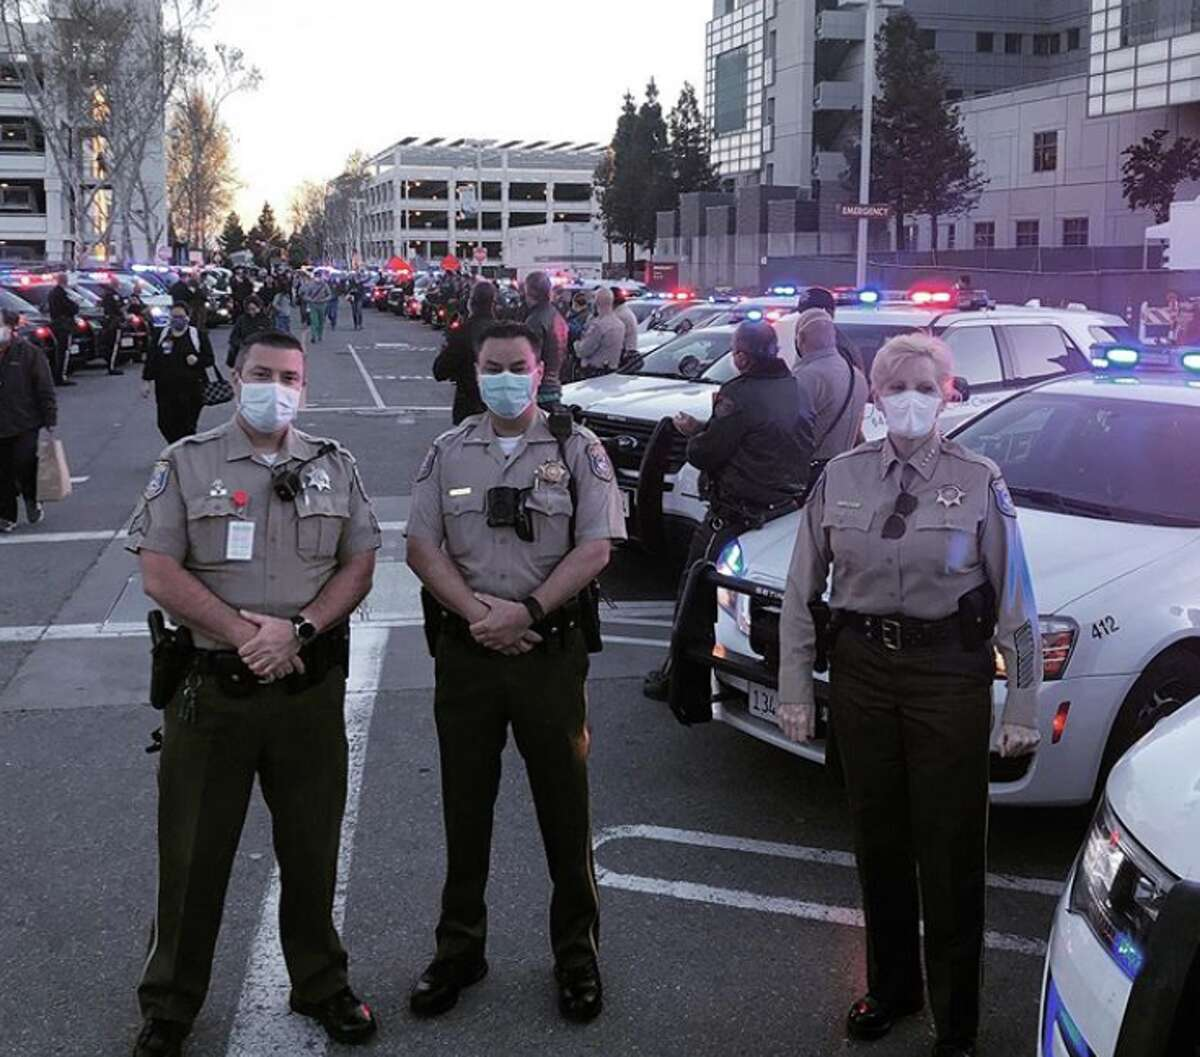 Police officers and fire officials greet medical staff on their way into work at the Valley Medical Center in San Jose.